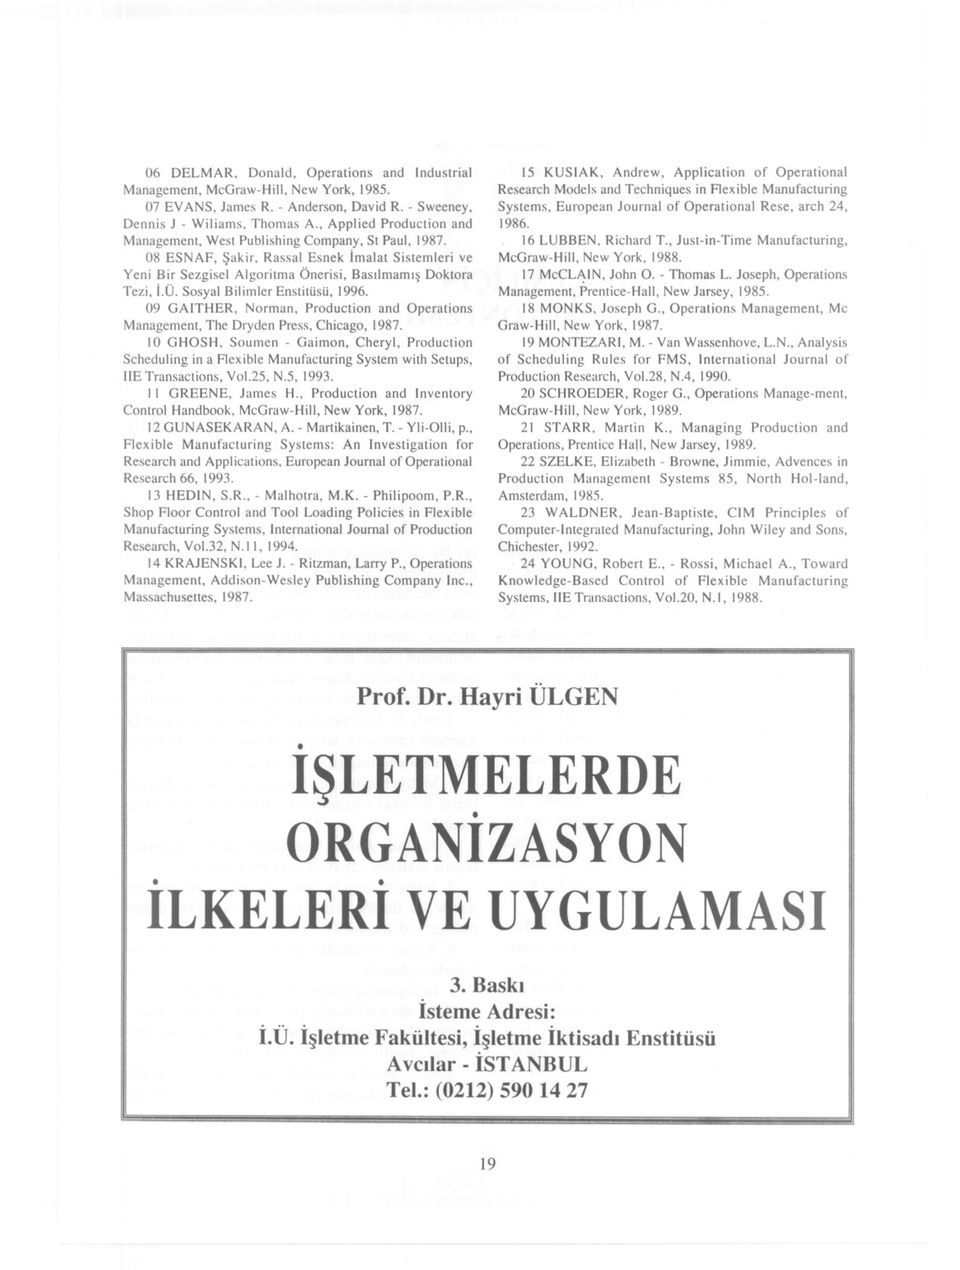 Sosyal Bilimler Enstitüsü, 1996. 09 GAITHER, Norman, Production and Operations Management, The Dryden Press, Chicago, 1987.